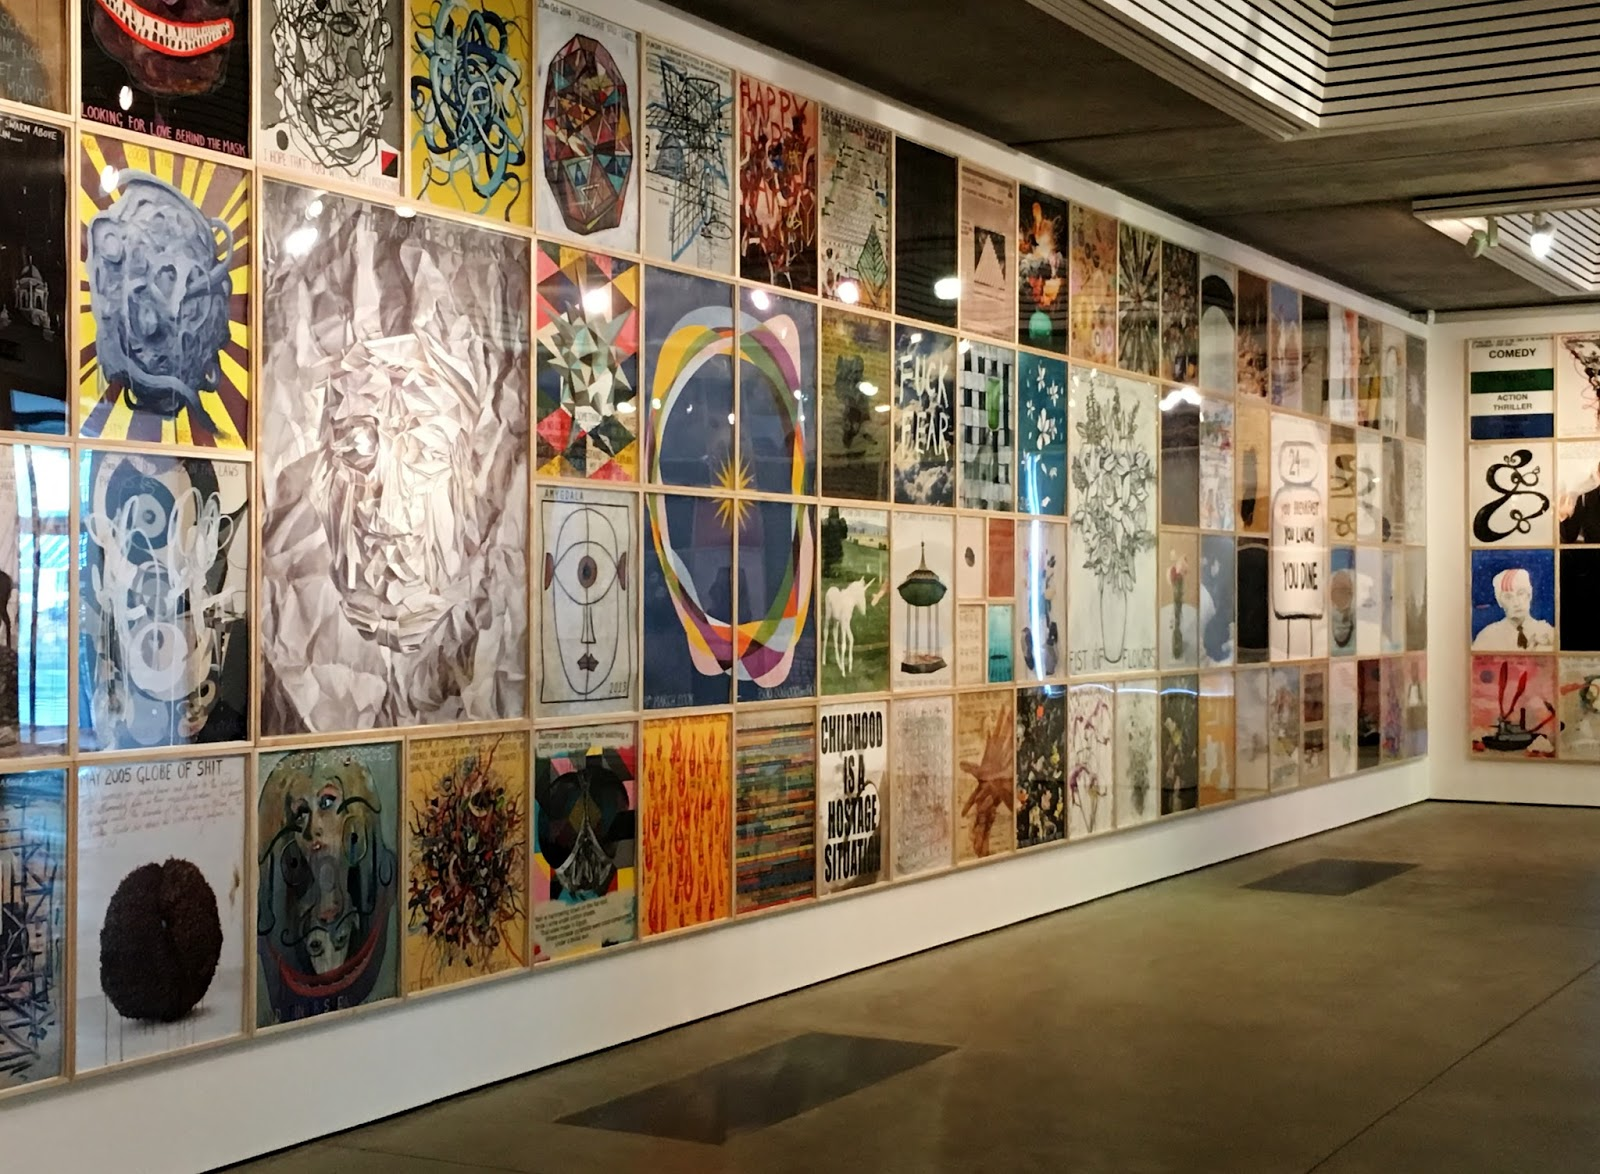 Keith Tyson exhibition at the Jerwood, plenty to look at